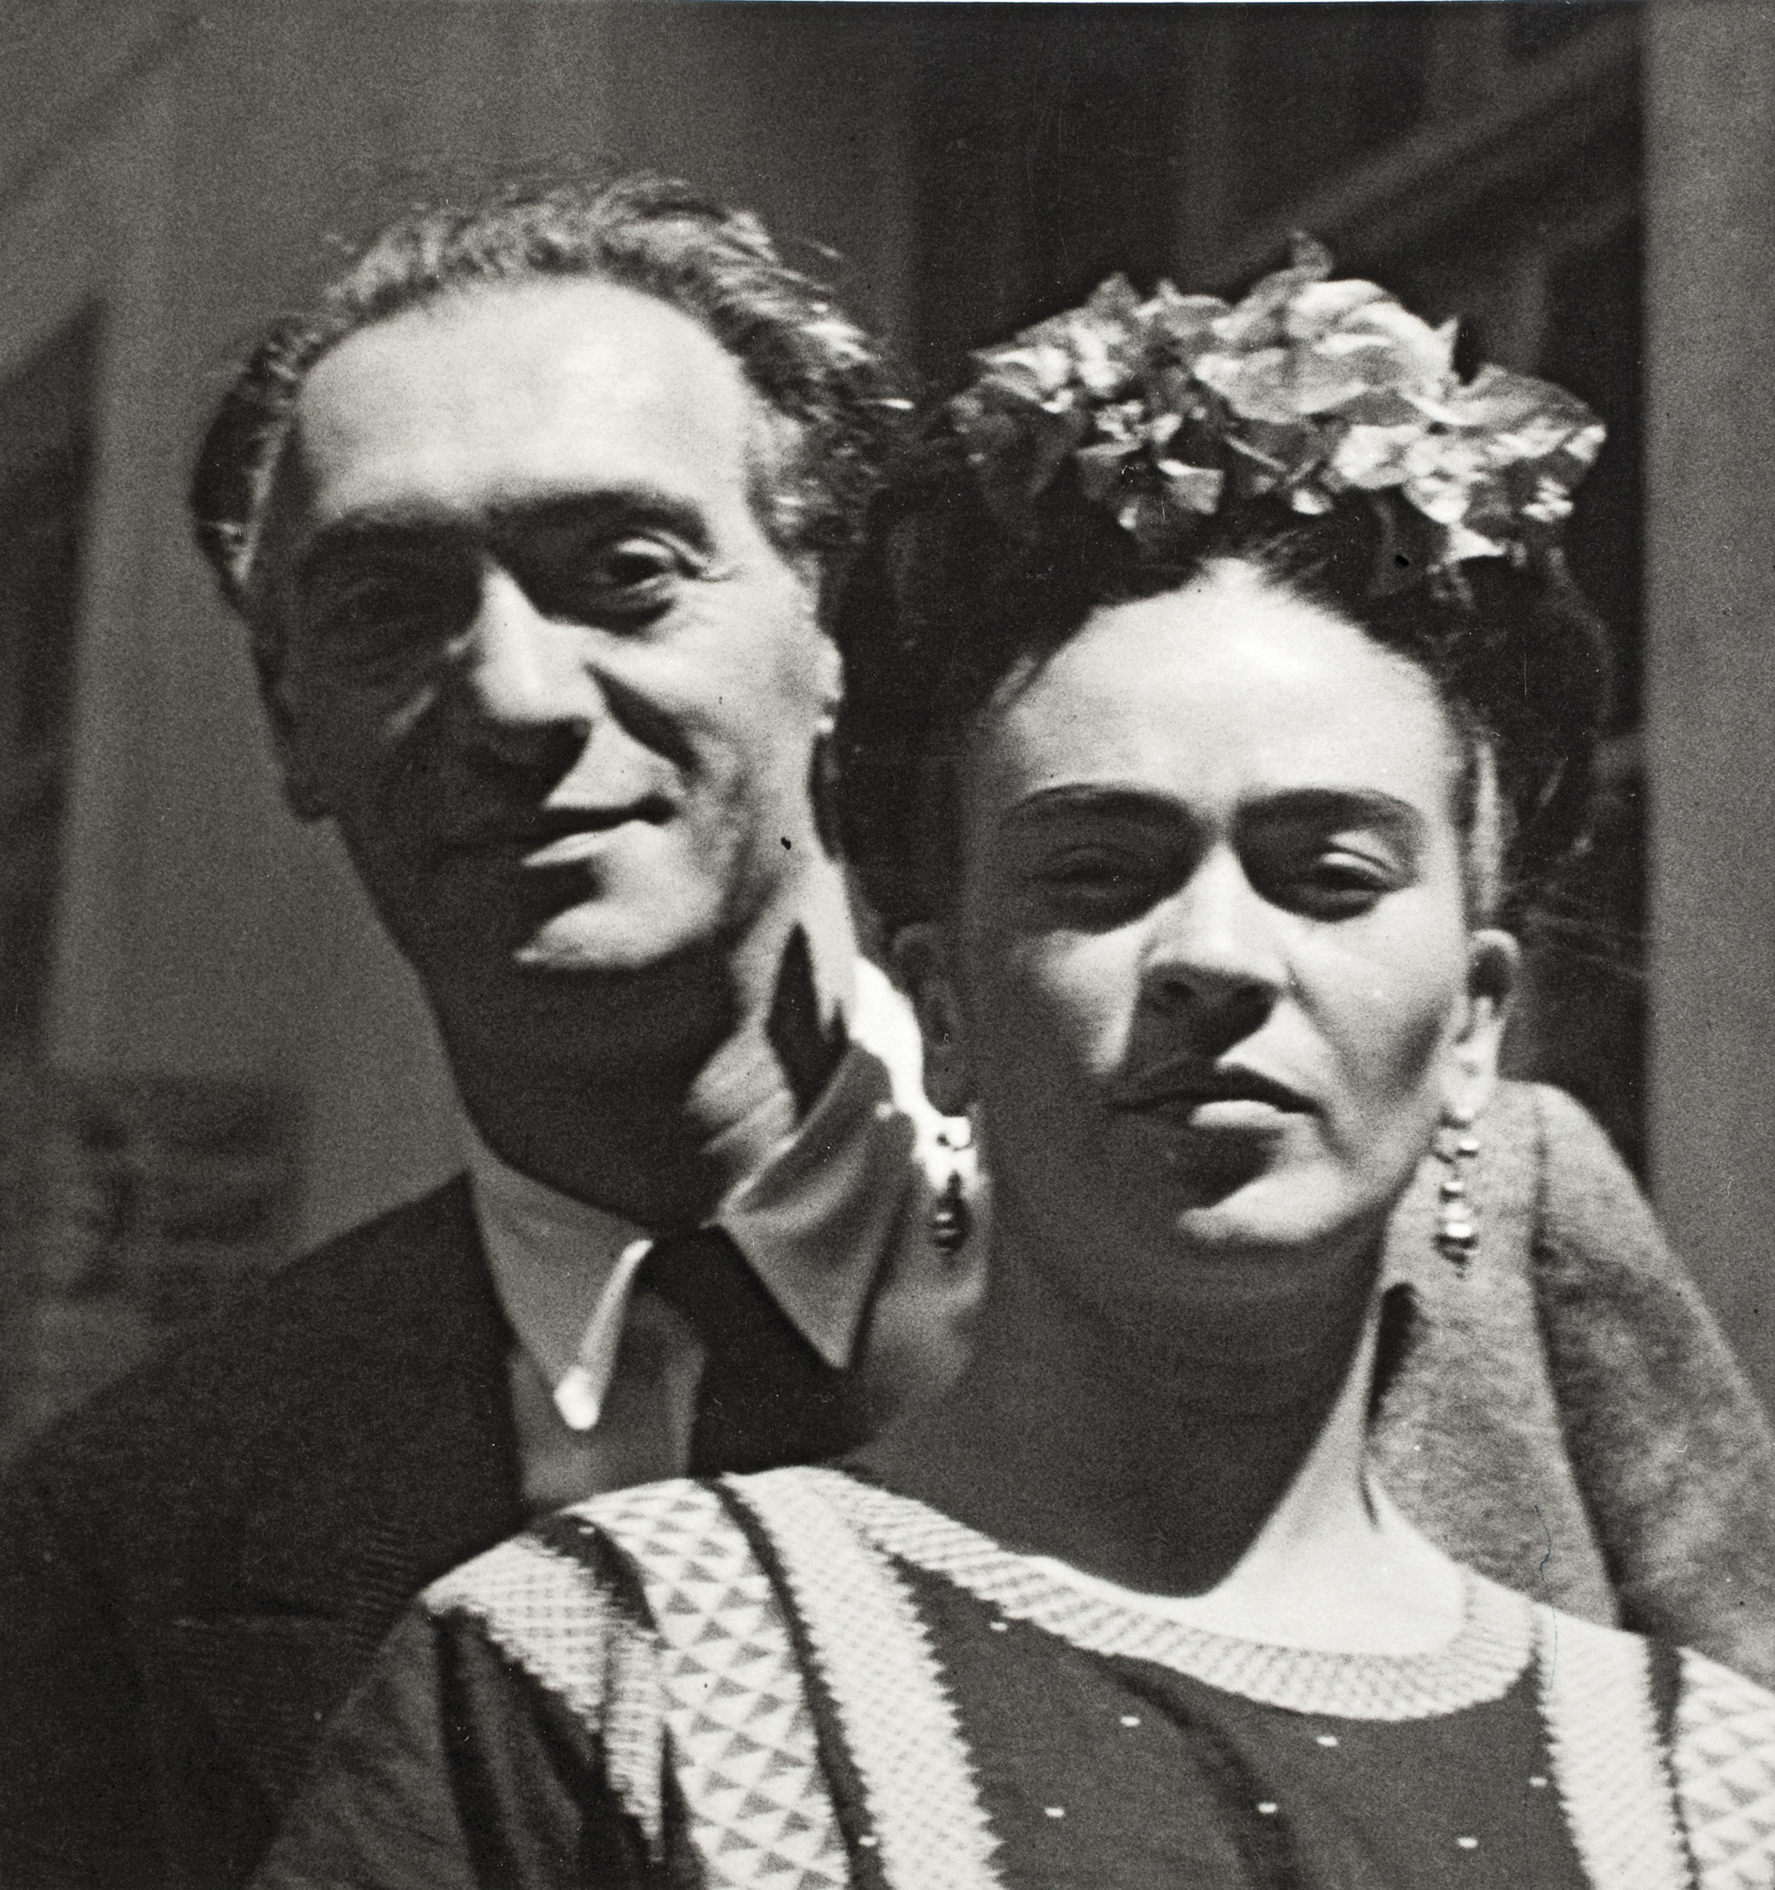 Nickolas  Muray  e  Frida  Kahlo,  por  Nickolas  Muray,  1939  ©  Museu  Frida  Kahlo